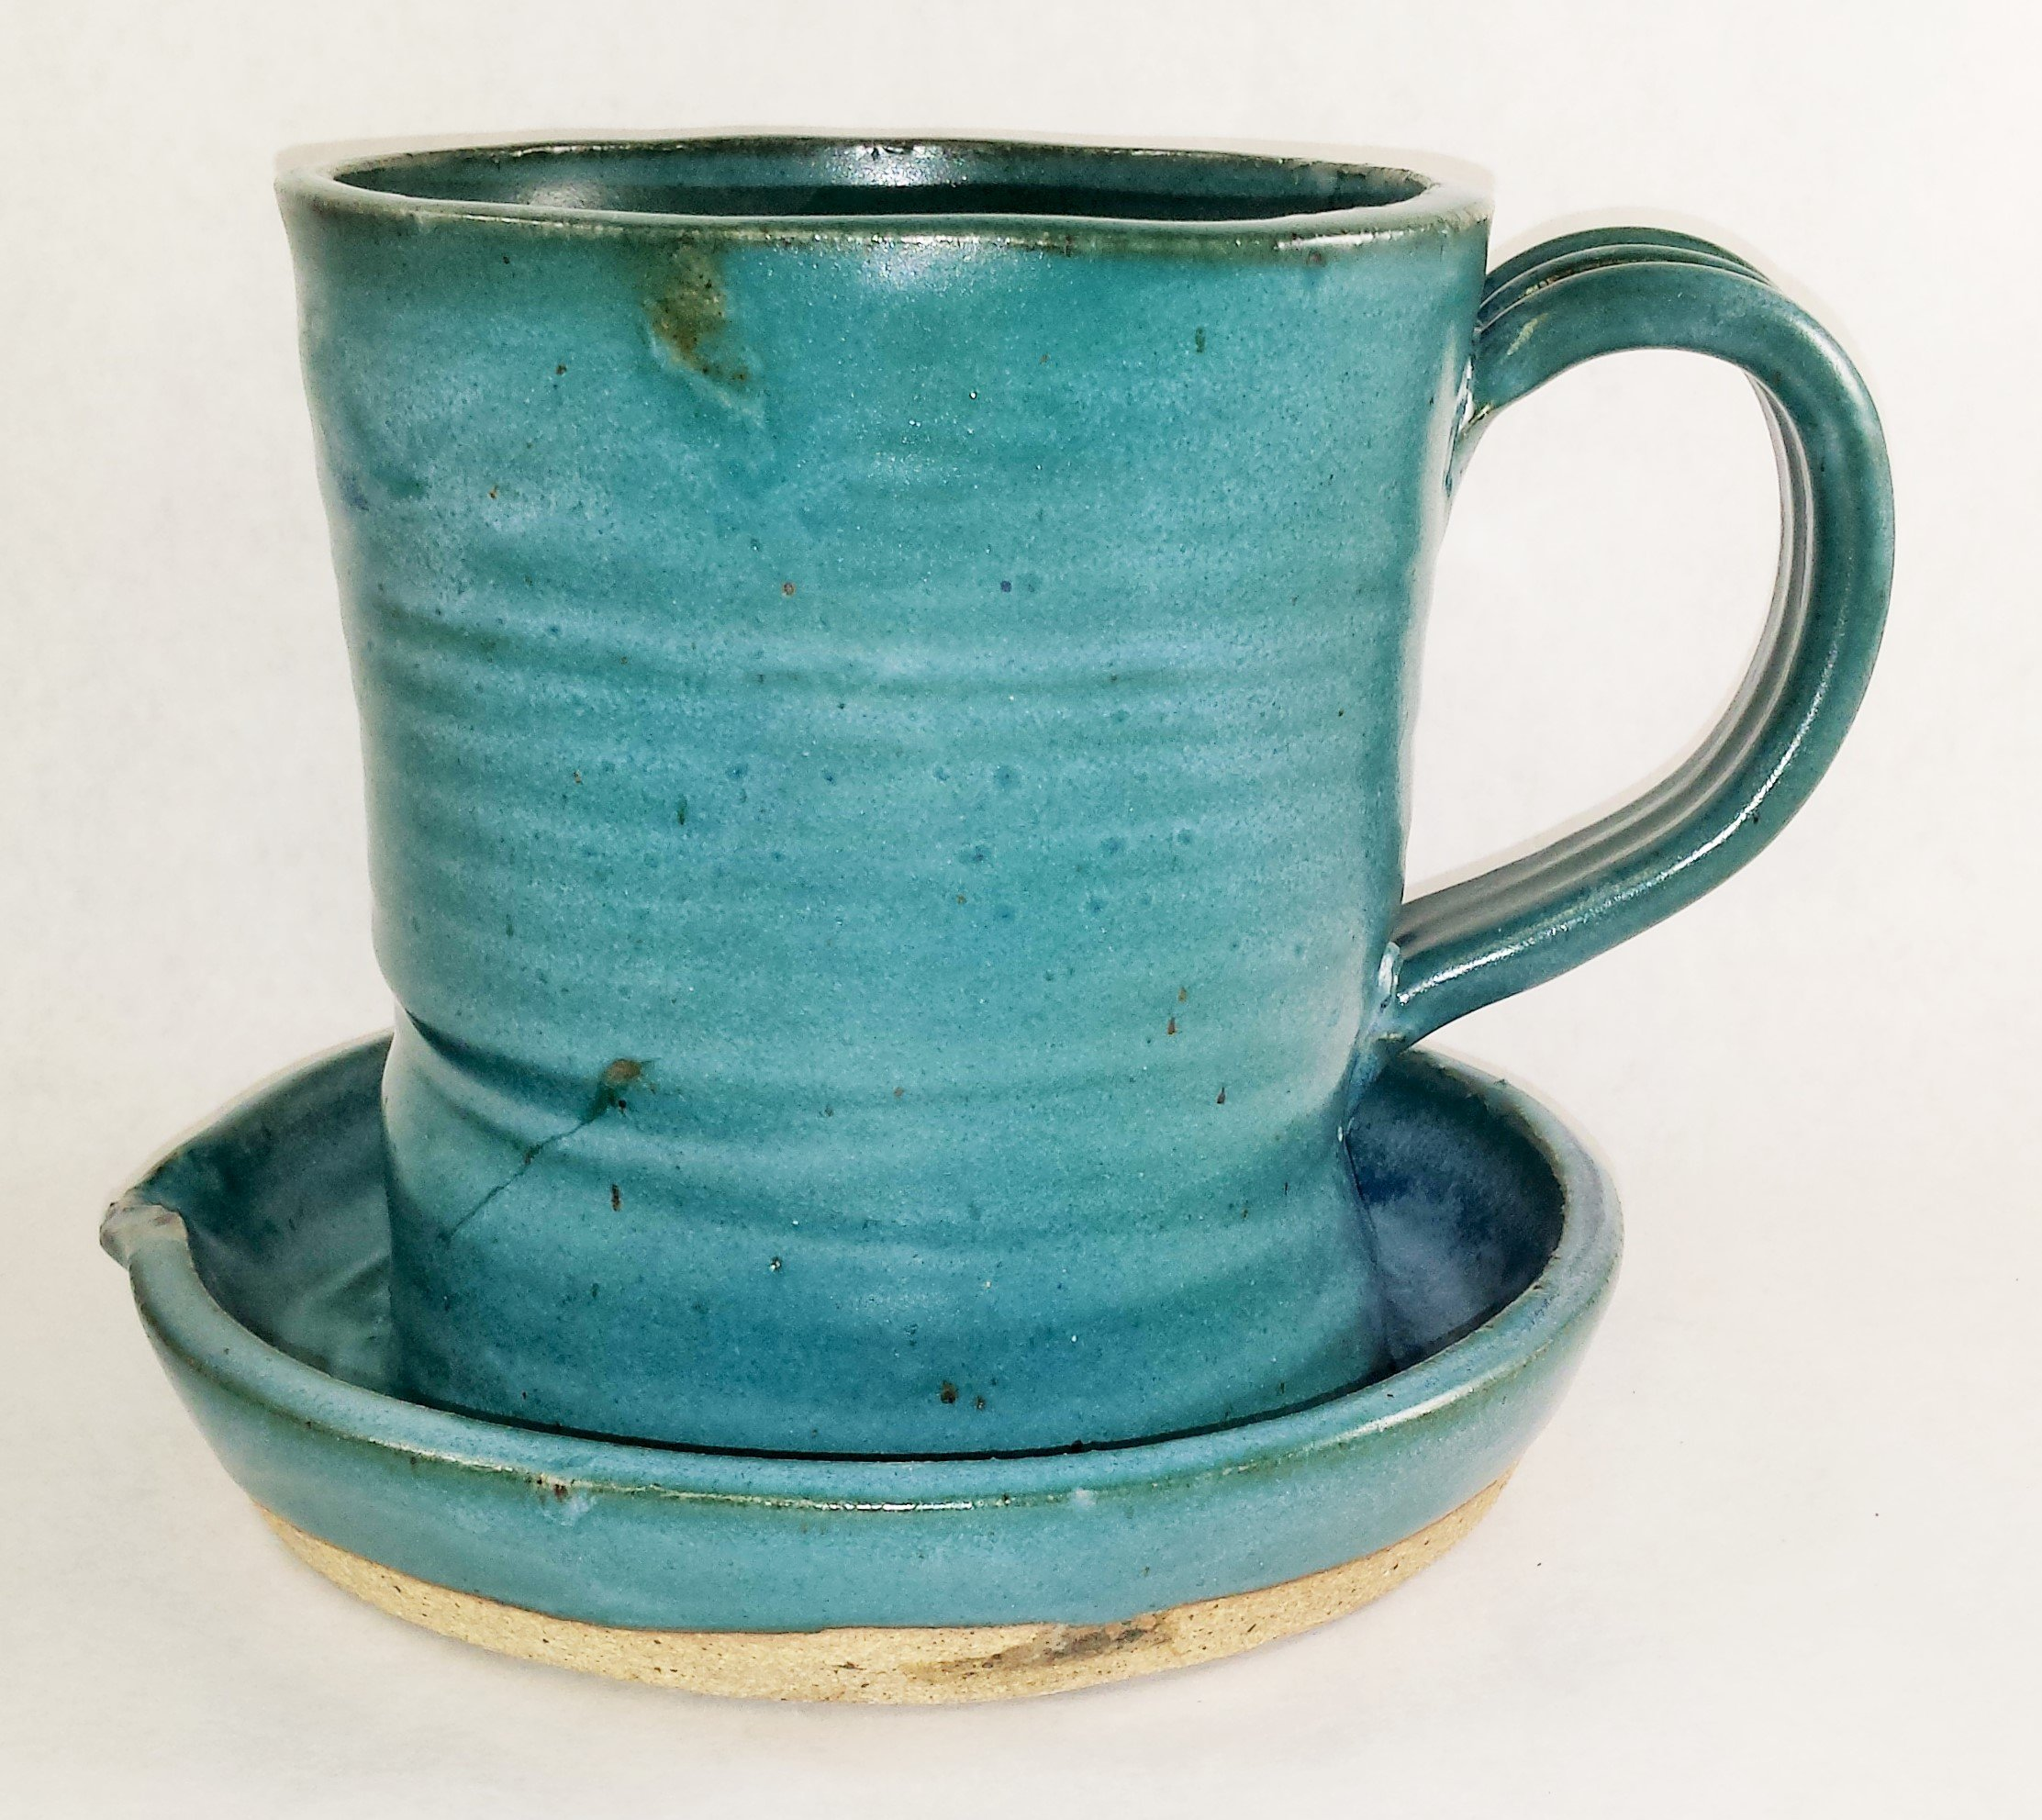 Aunt Chris' Pottery - Heavy Hand Made - Clay Bacon Cooker - Primitive Teal Color Glazed - Unique New Way of Cooking Bacon